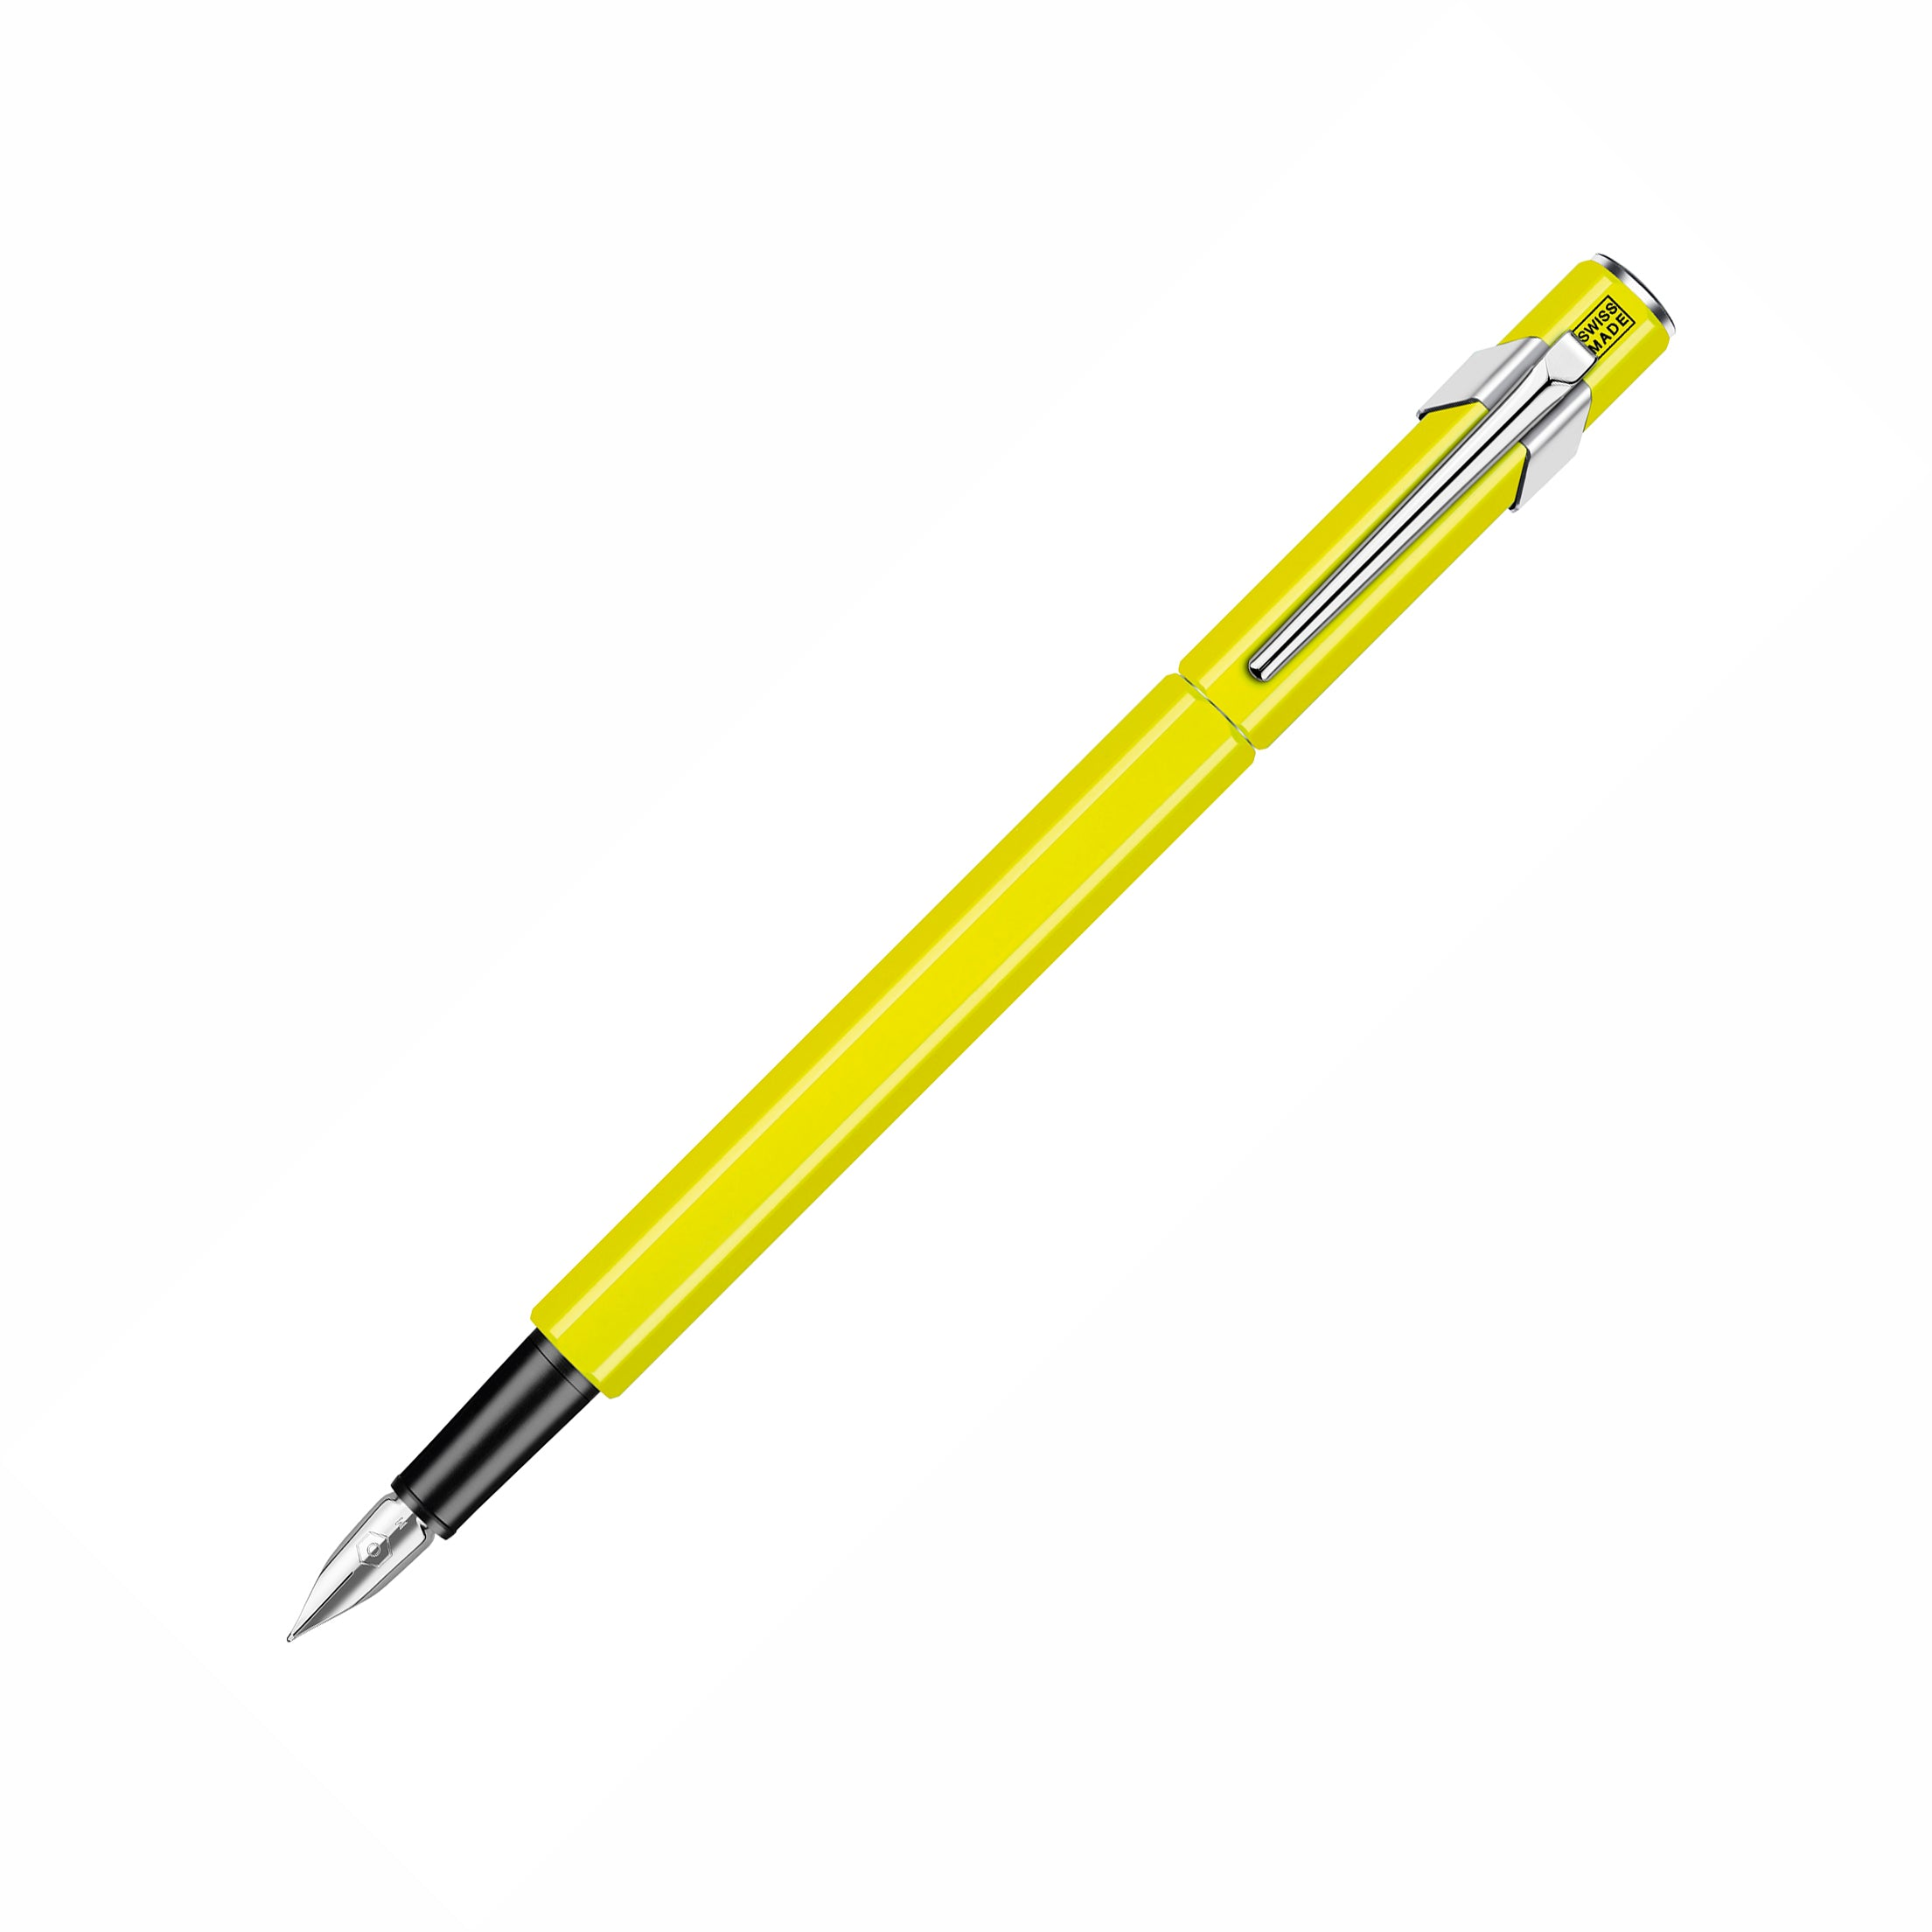 849 Fountain Pen - Medium Nib / Yellow